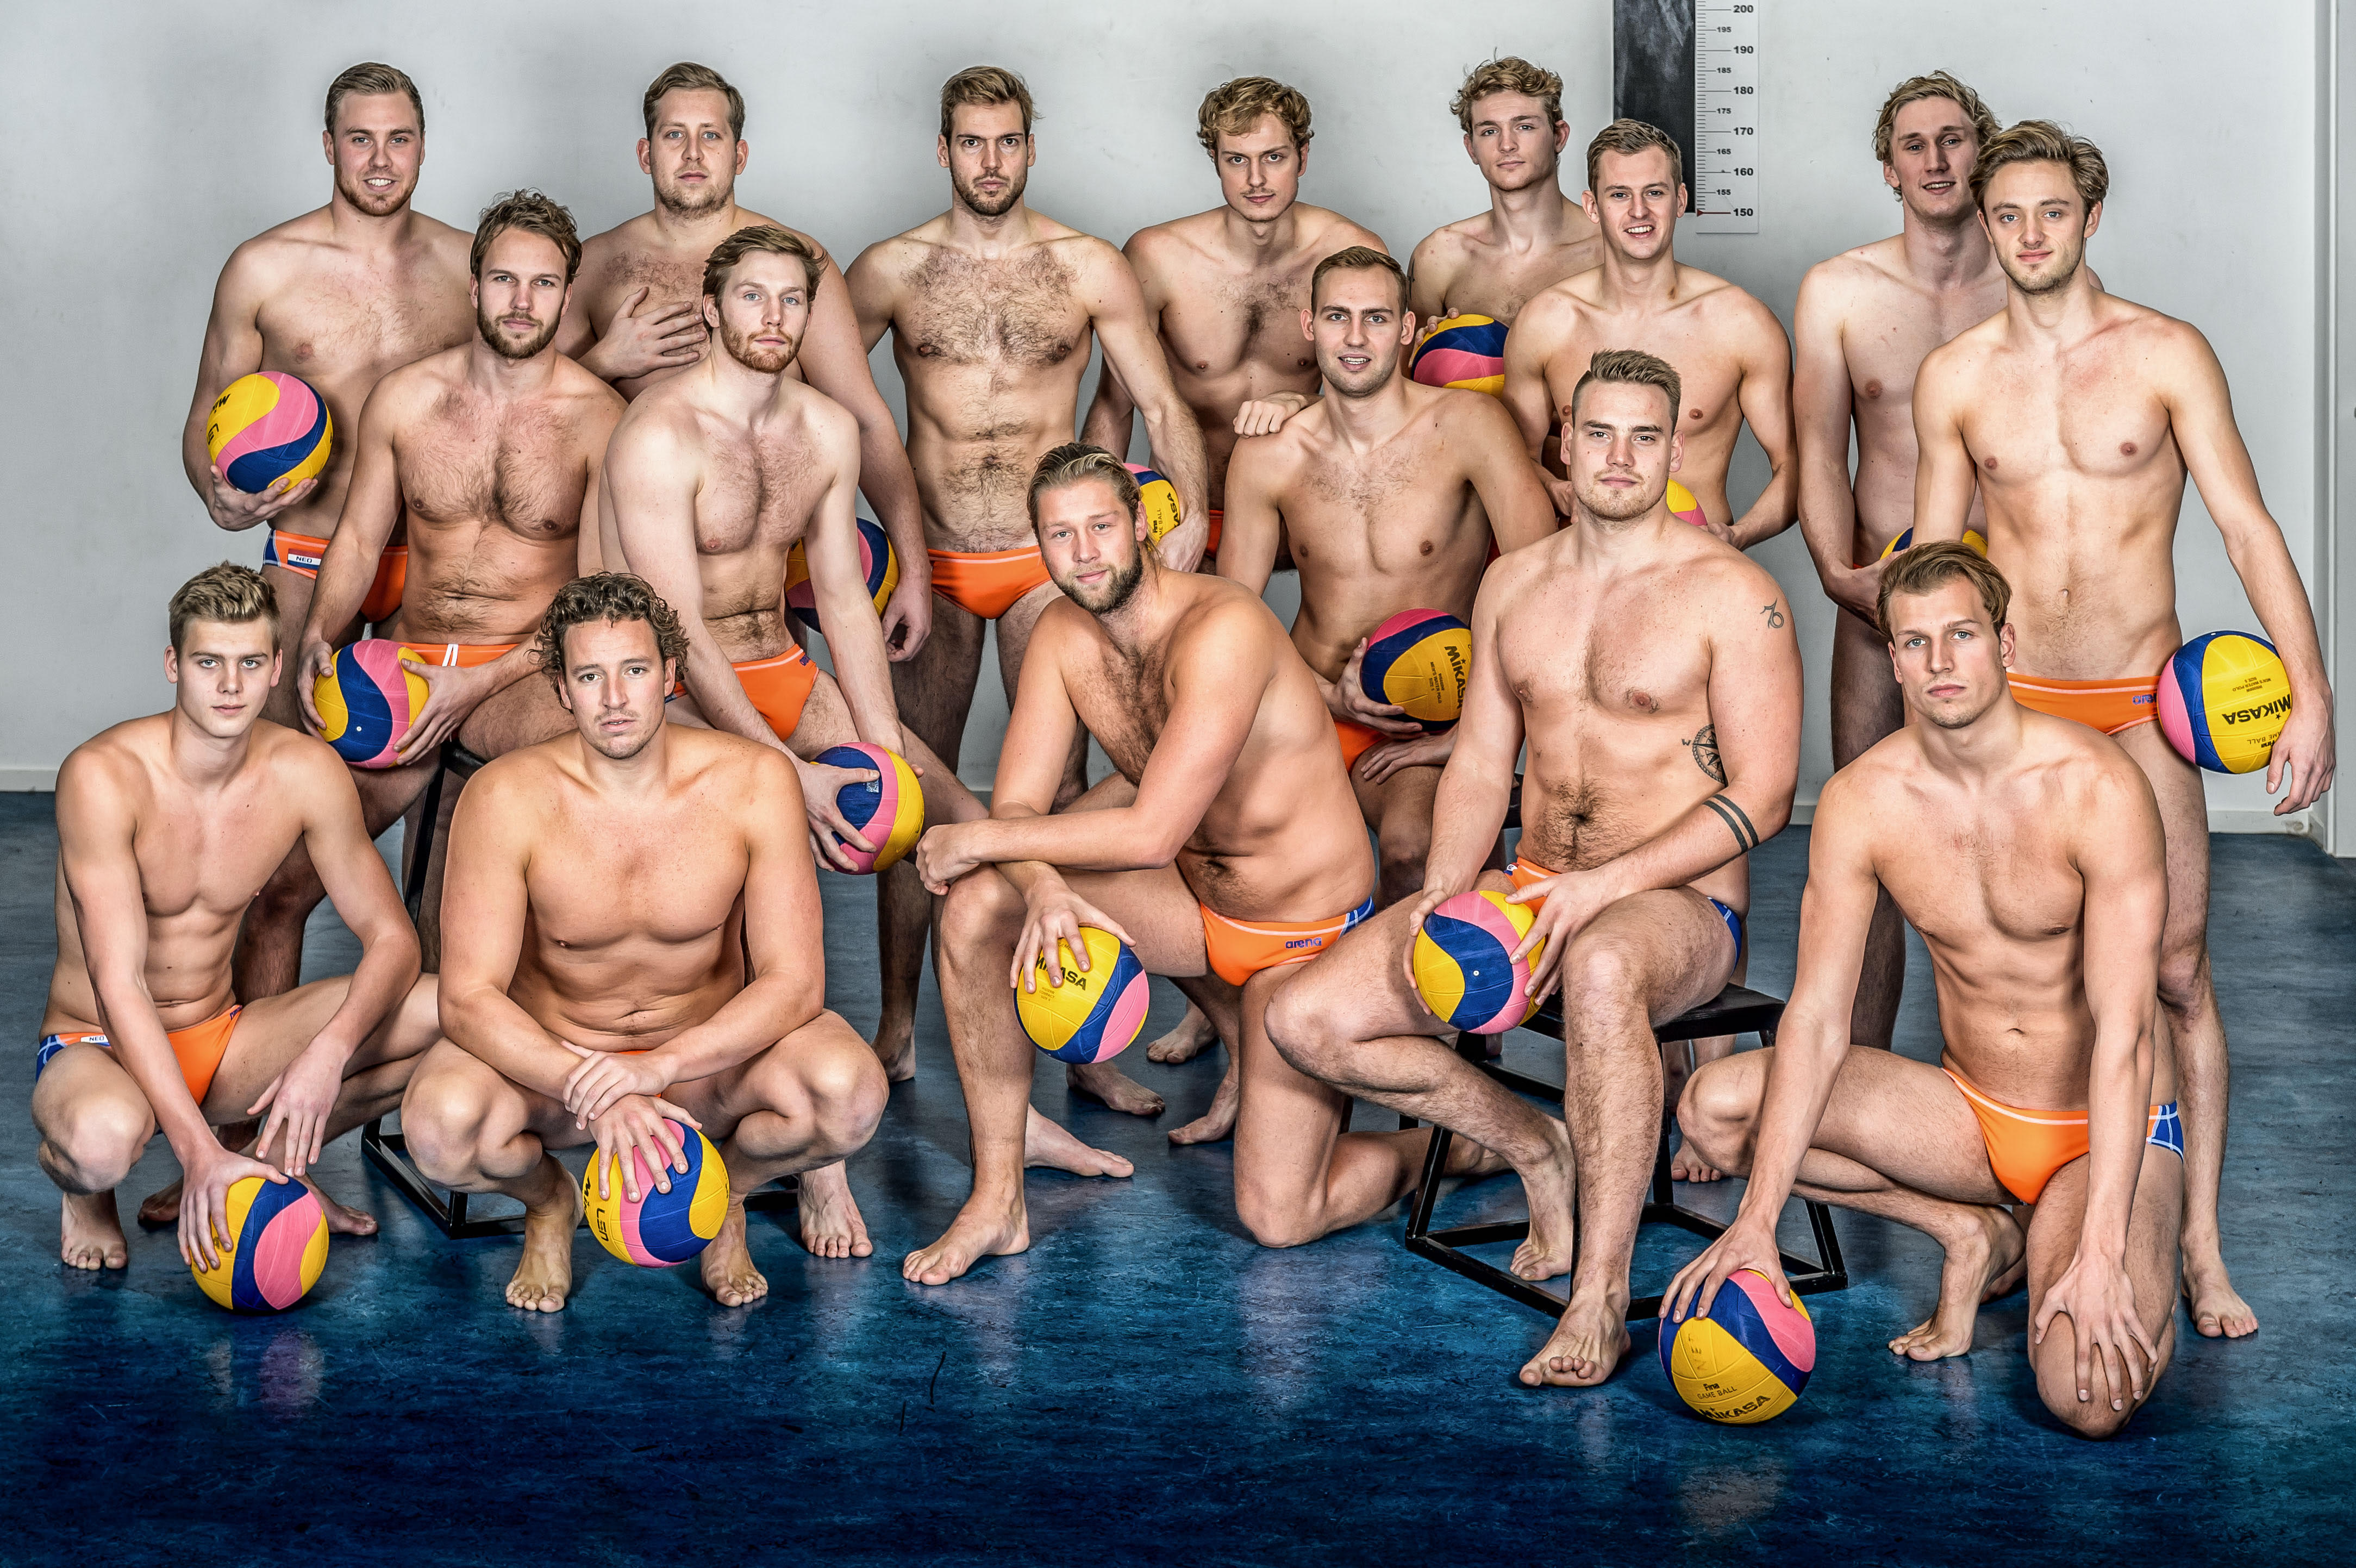 Pics amateur naked dudes water polo players